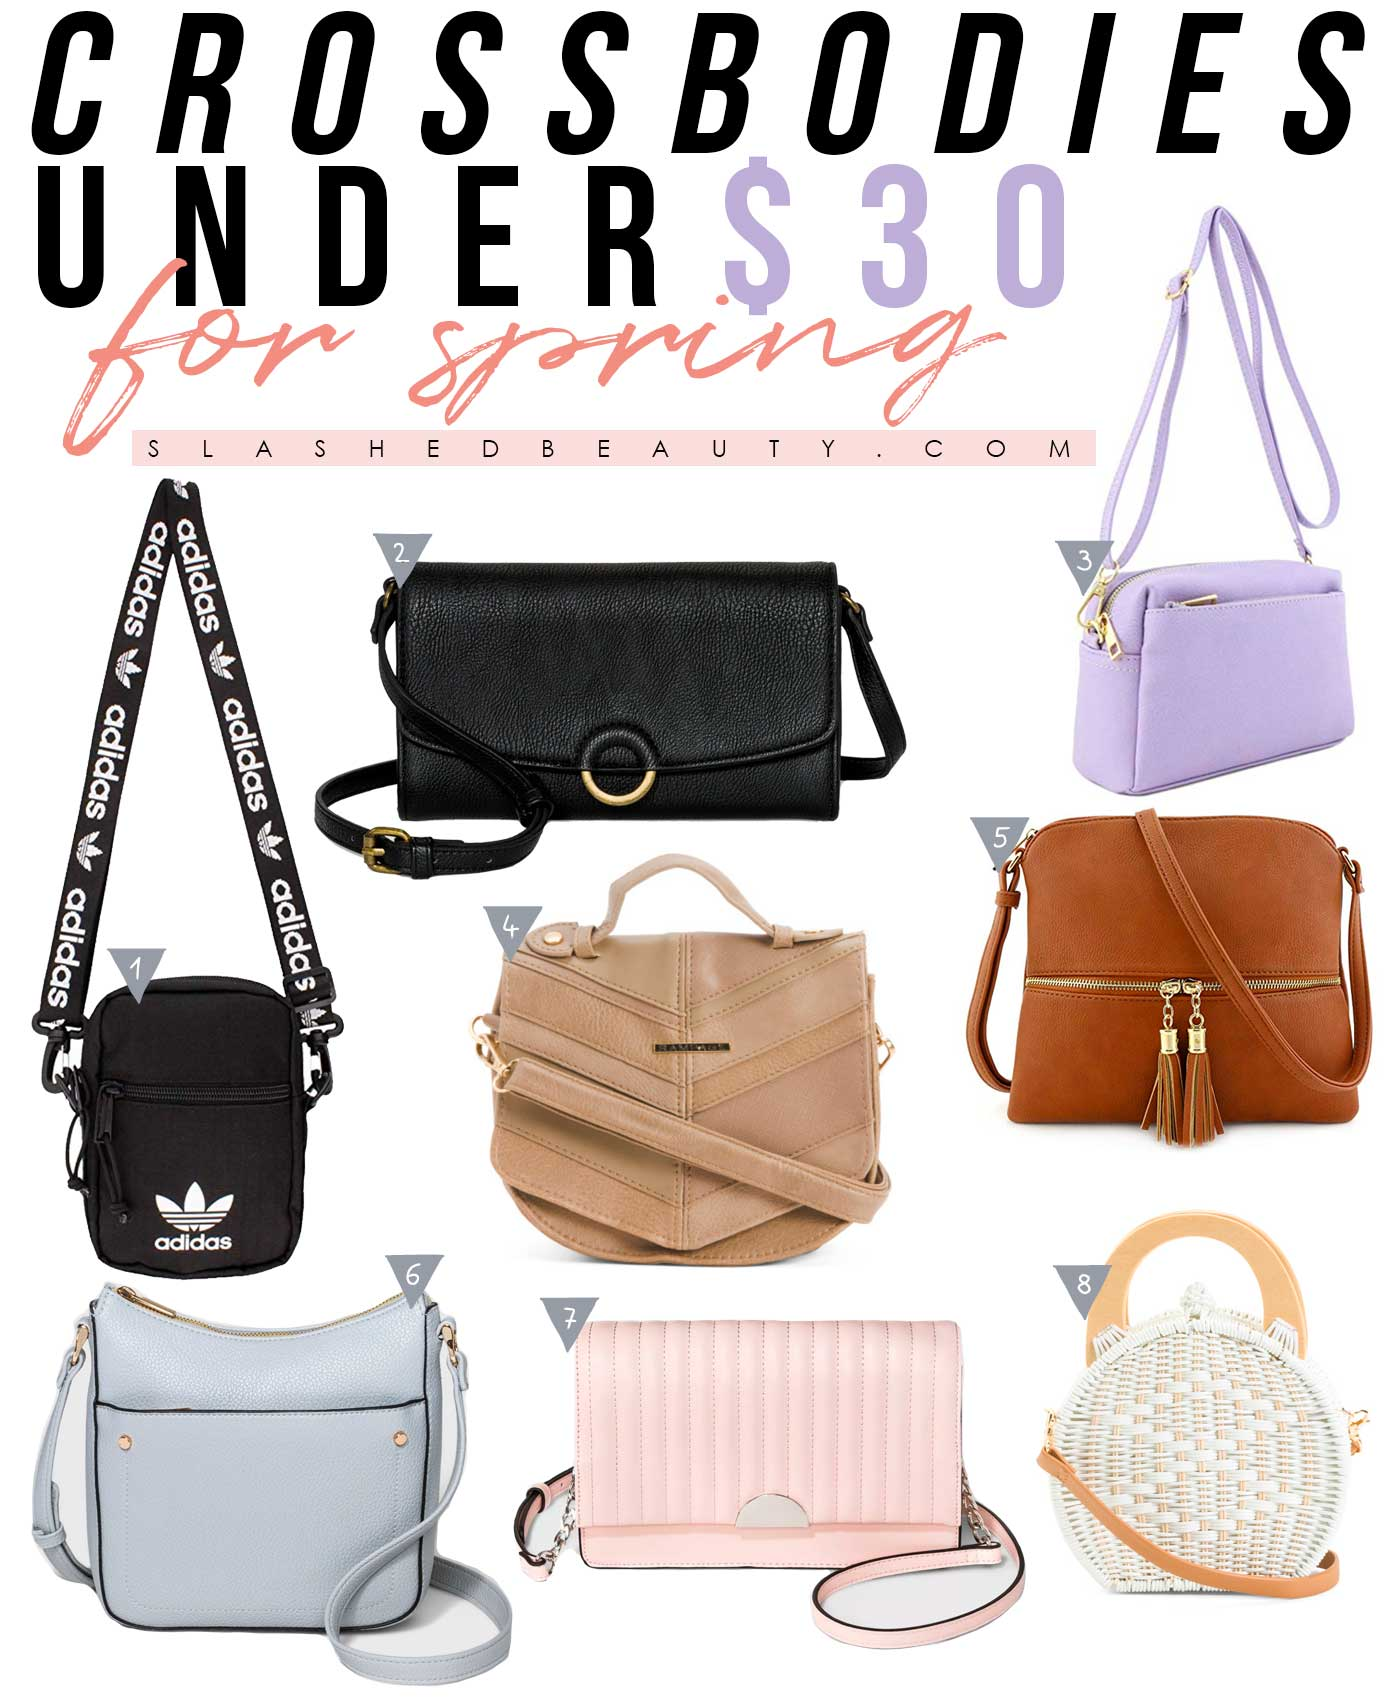 Cute Crossbody Purses for Spring under $30 | Slashed Beauty